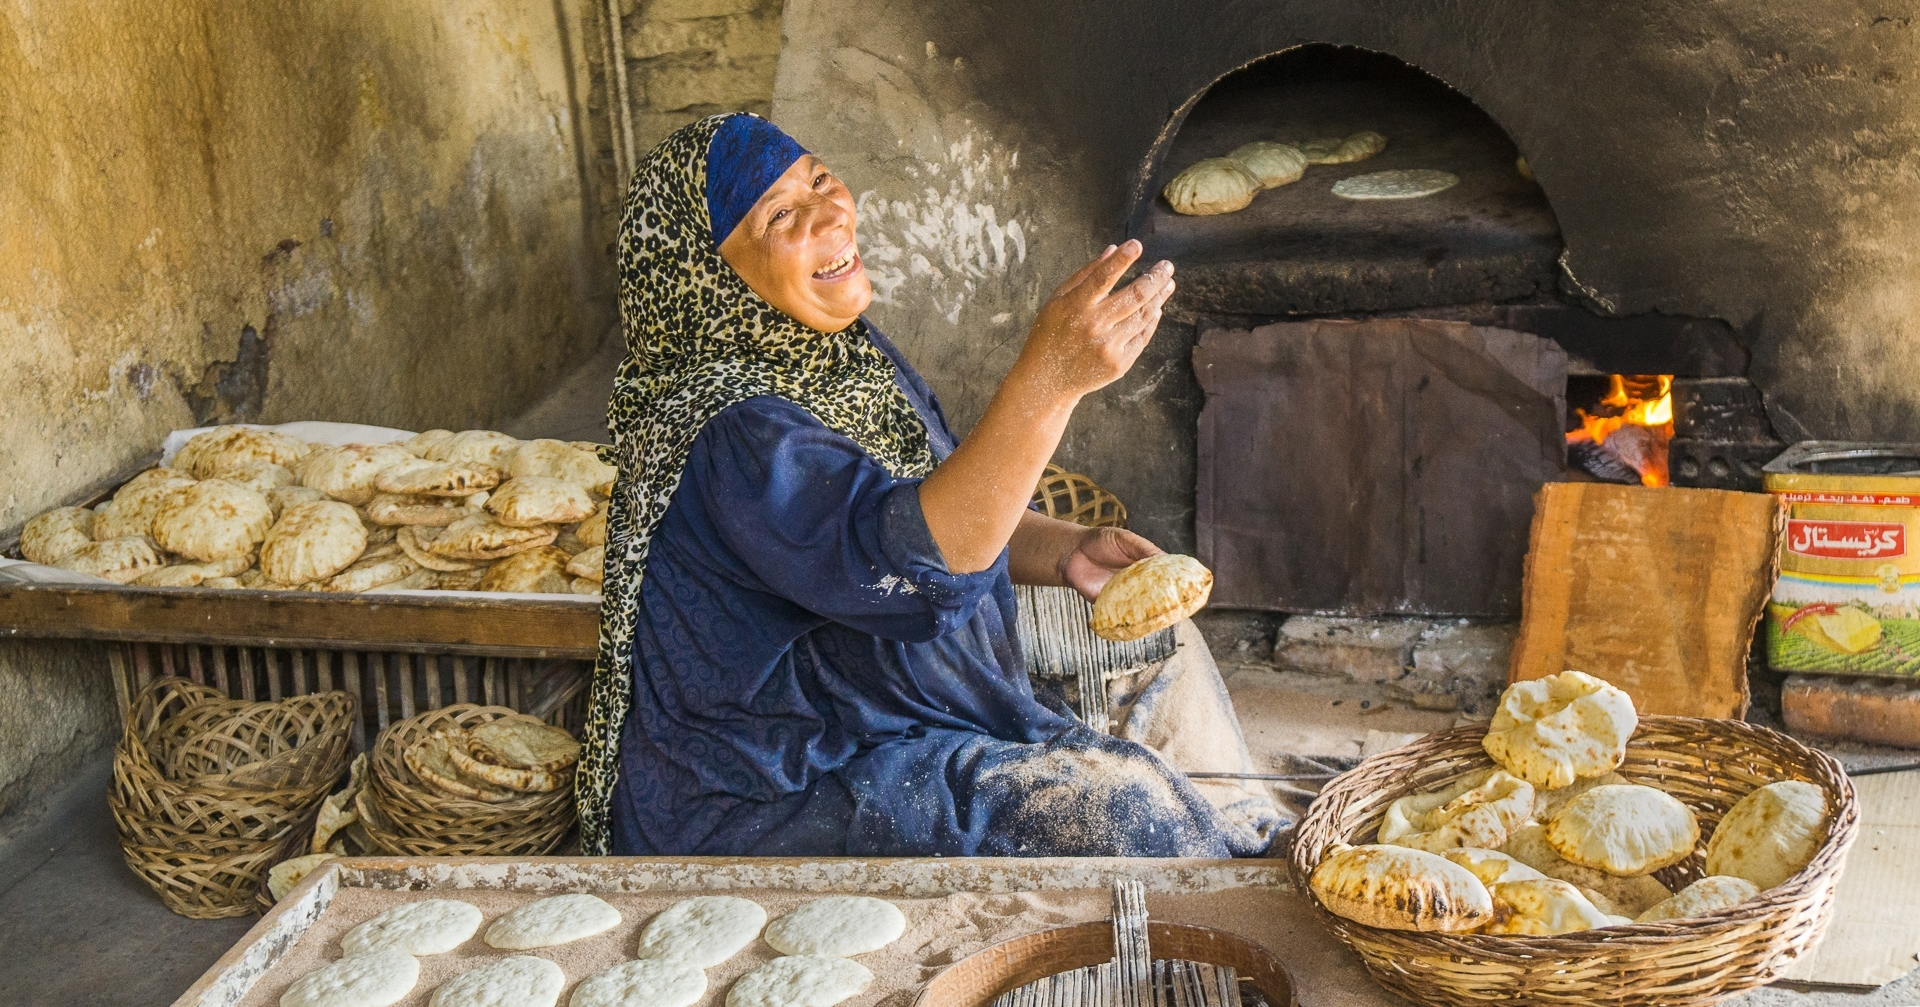 The-chapati-baker-greets-her-visitors-at-her-oven-at-a-village-near-Luxor-Egypt.-After-the-military-coup-Egypts-tourism-industry-collapsed.-TB-Best-in-Show-by-Fran-Mueller-MR